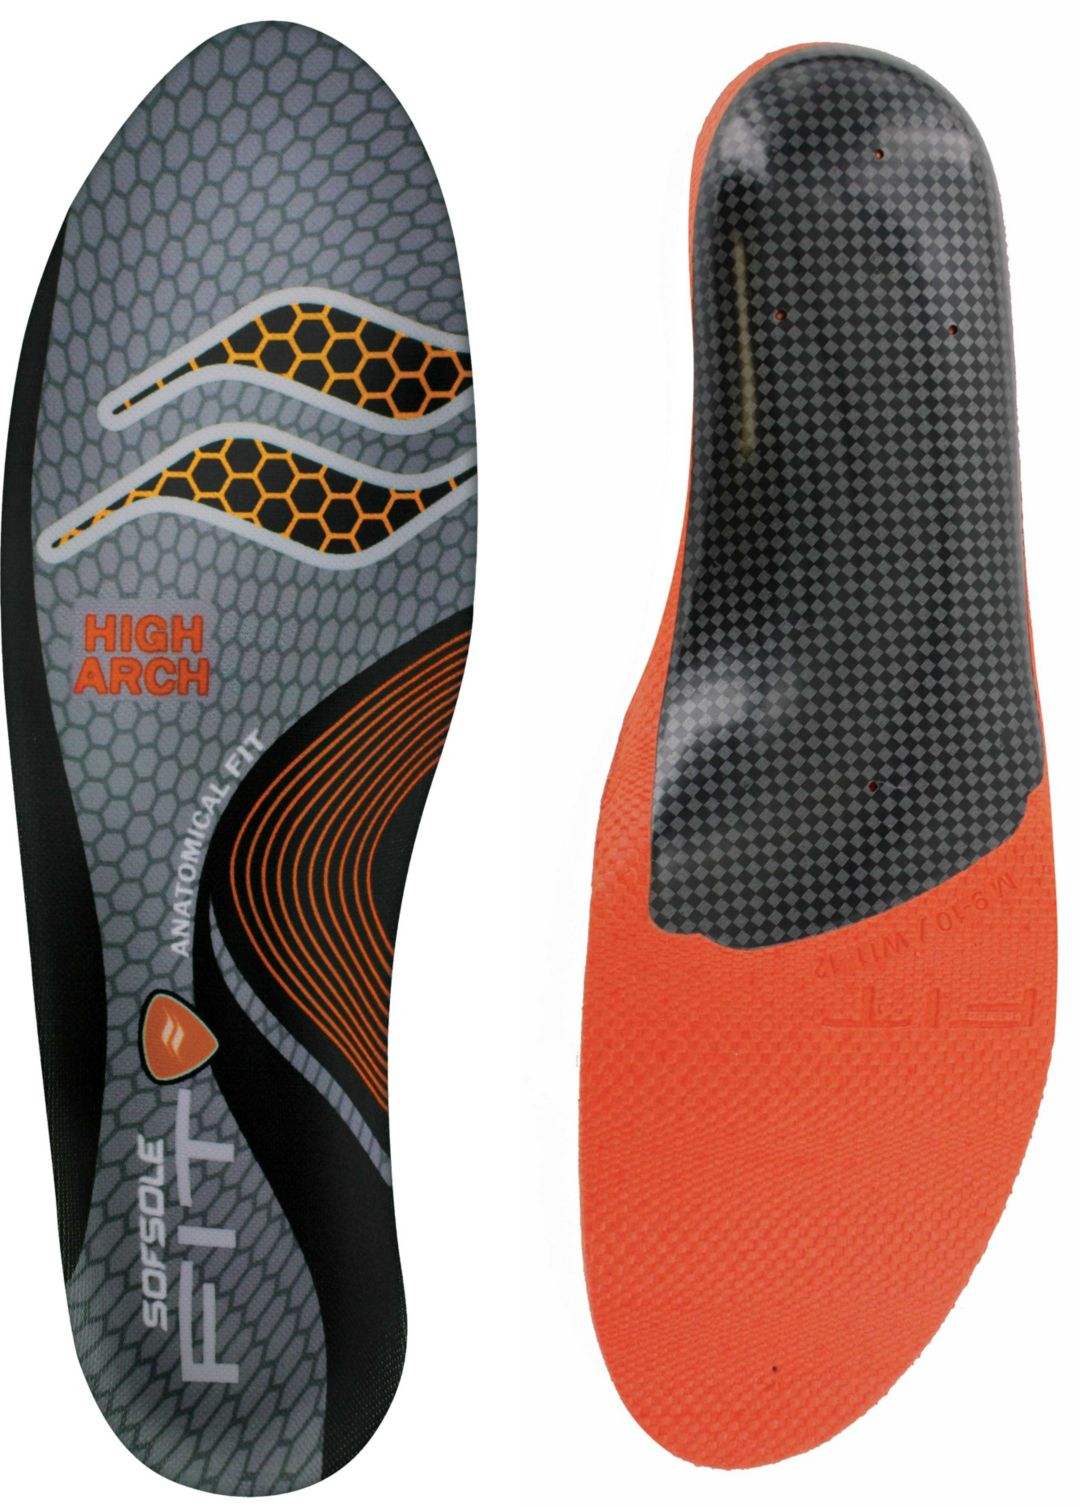 fd1265f156 Sof Sole Fit High Arch Insole | DICK'S Sporting Goods